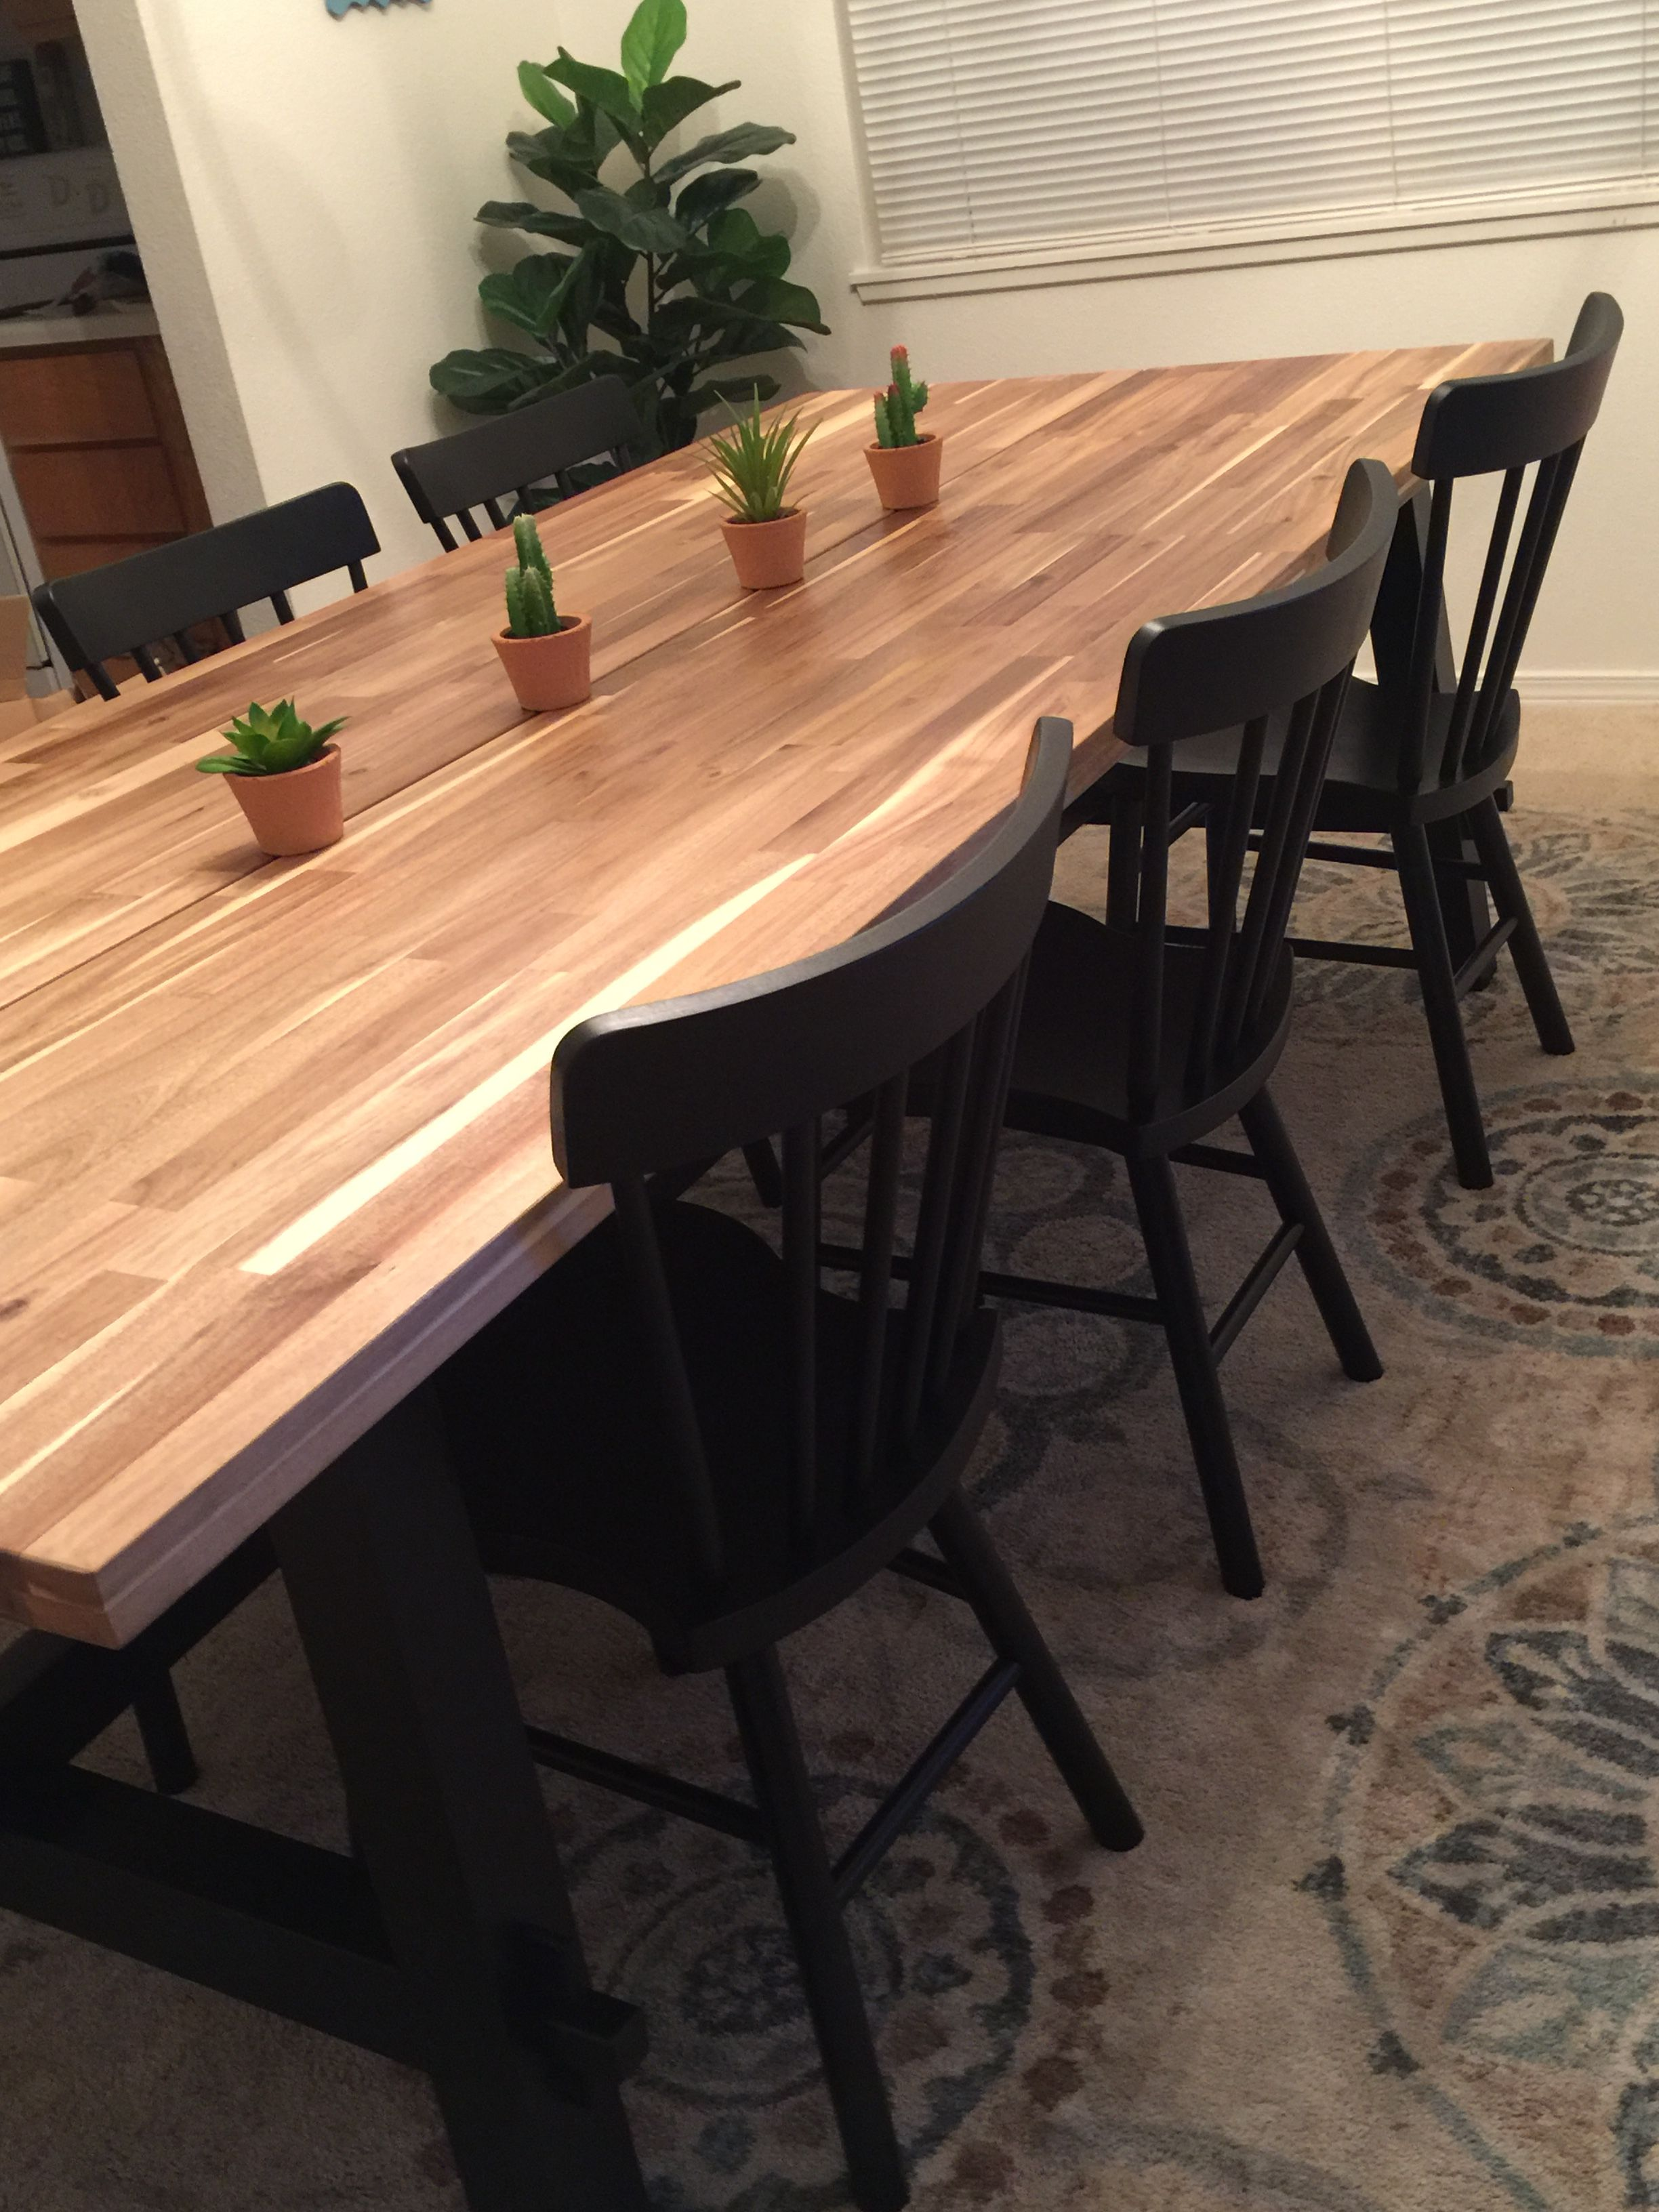 Ikea skogsta table Dining table makeover, Dinner tables